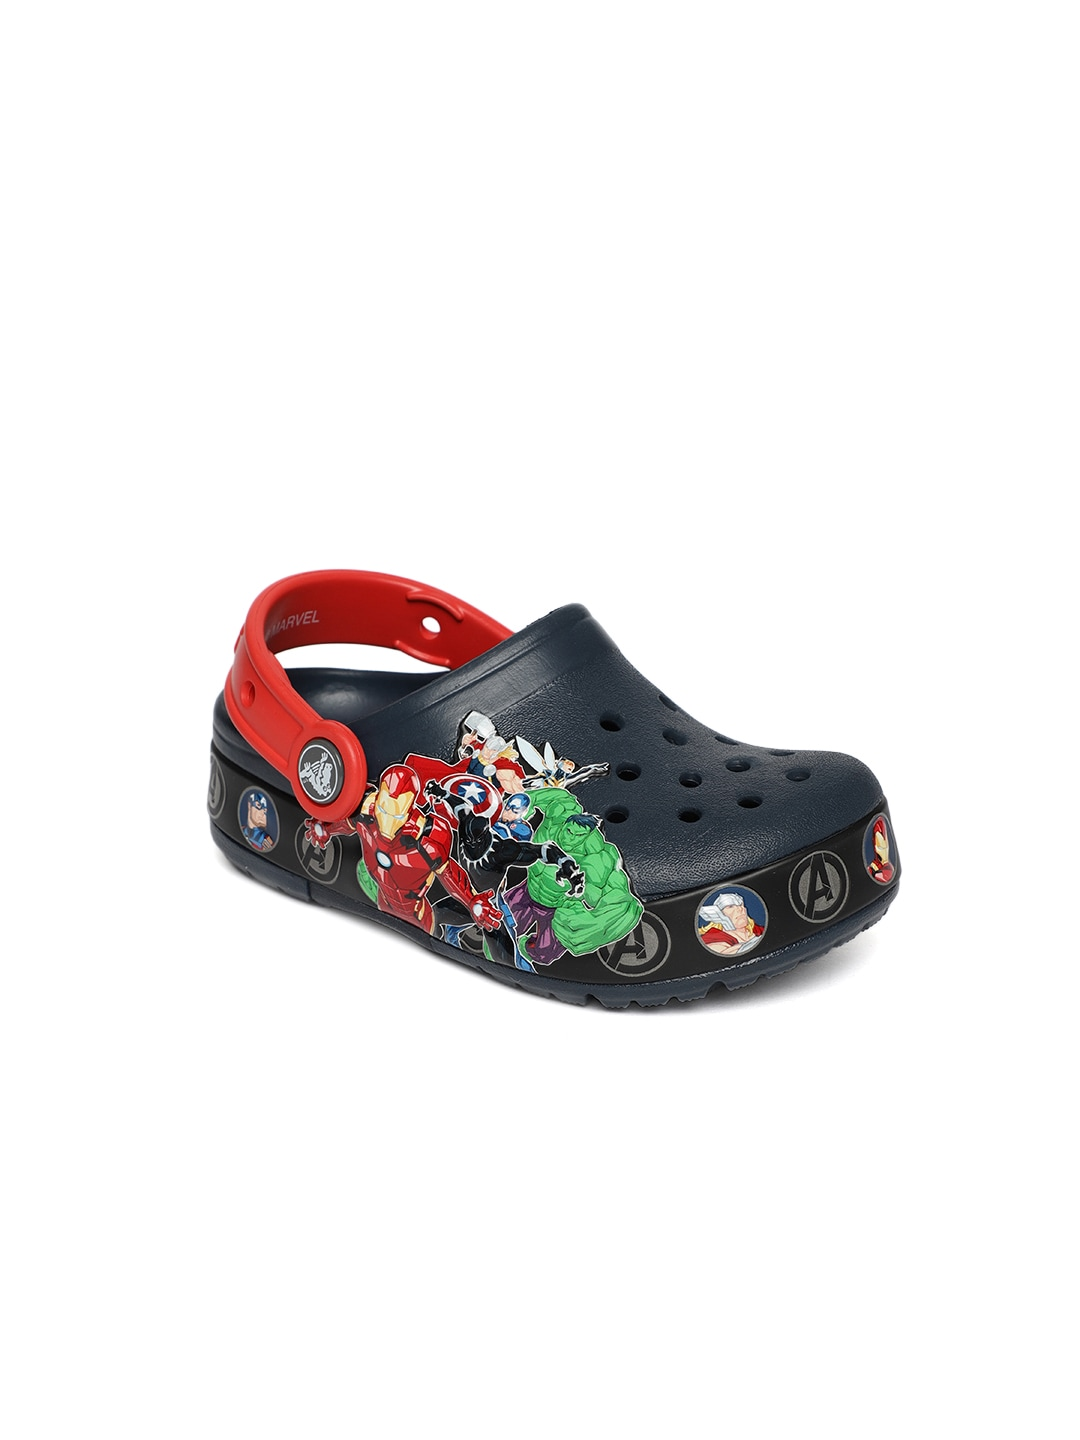 ba5ef88fa184 Boys Girls Crocs - Buy Boys Girls Crocs online in India